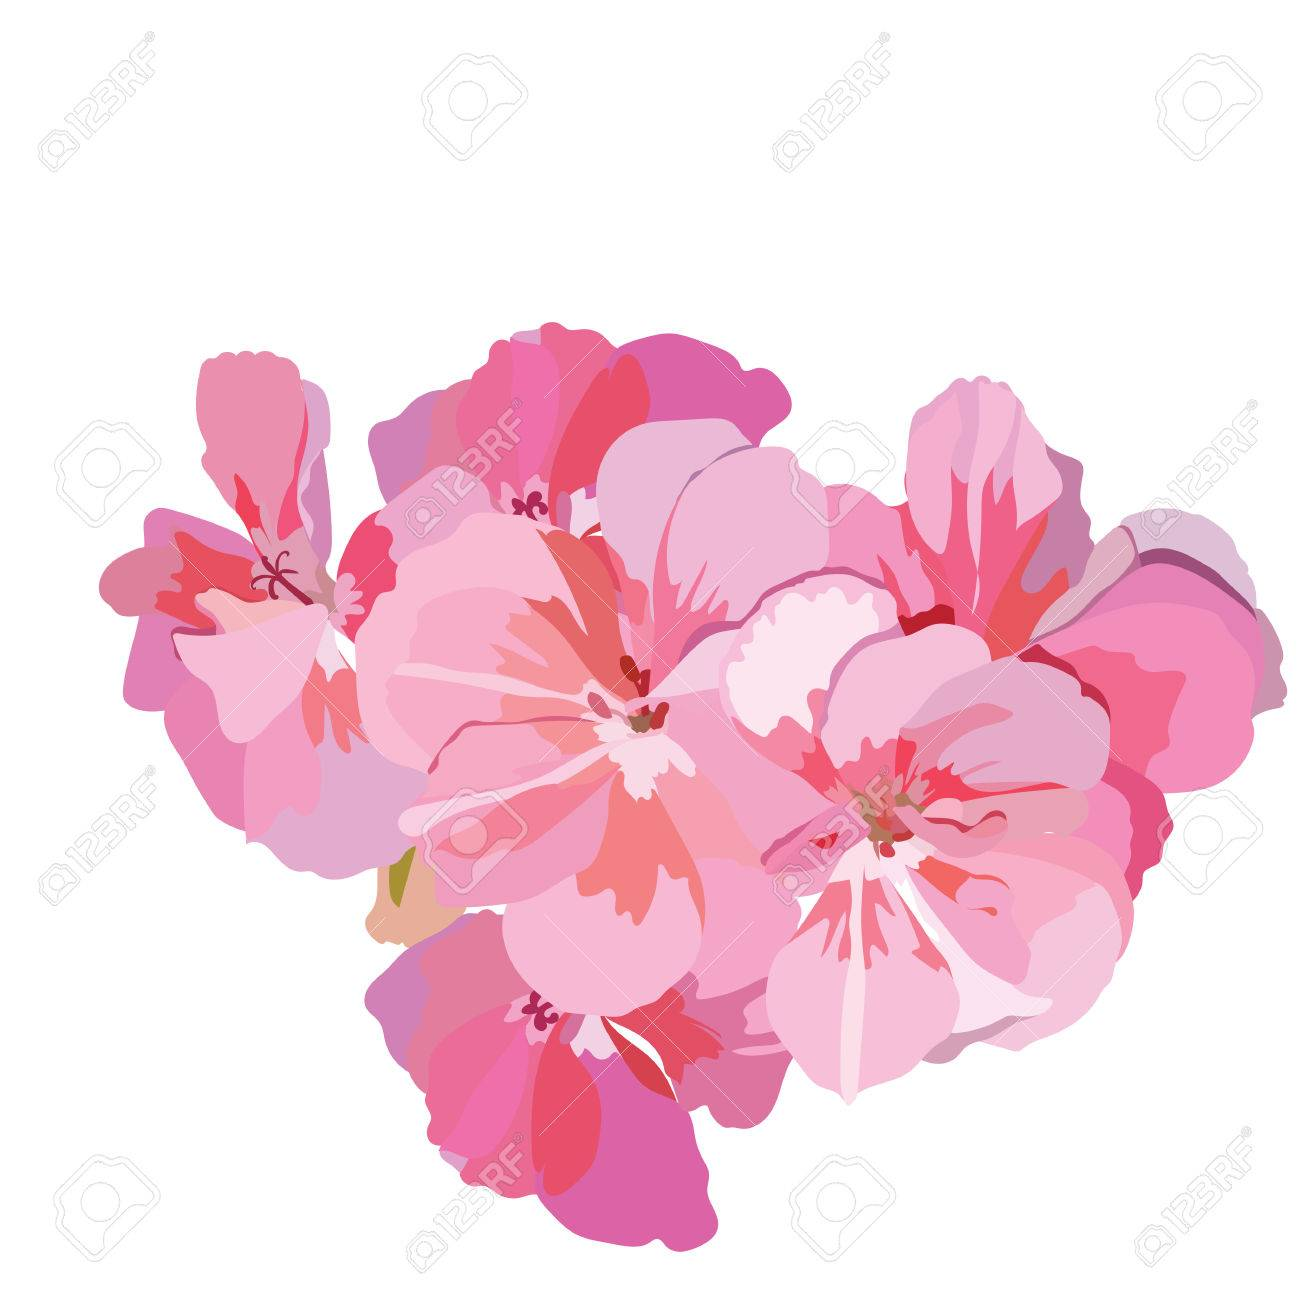 Pink flowers bouquet isolated on white watercolor flowers pink flowers bouquet isolated on white watercolor flowers illustration vintage elegant card illustration for mightylinksfo